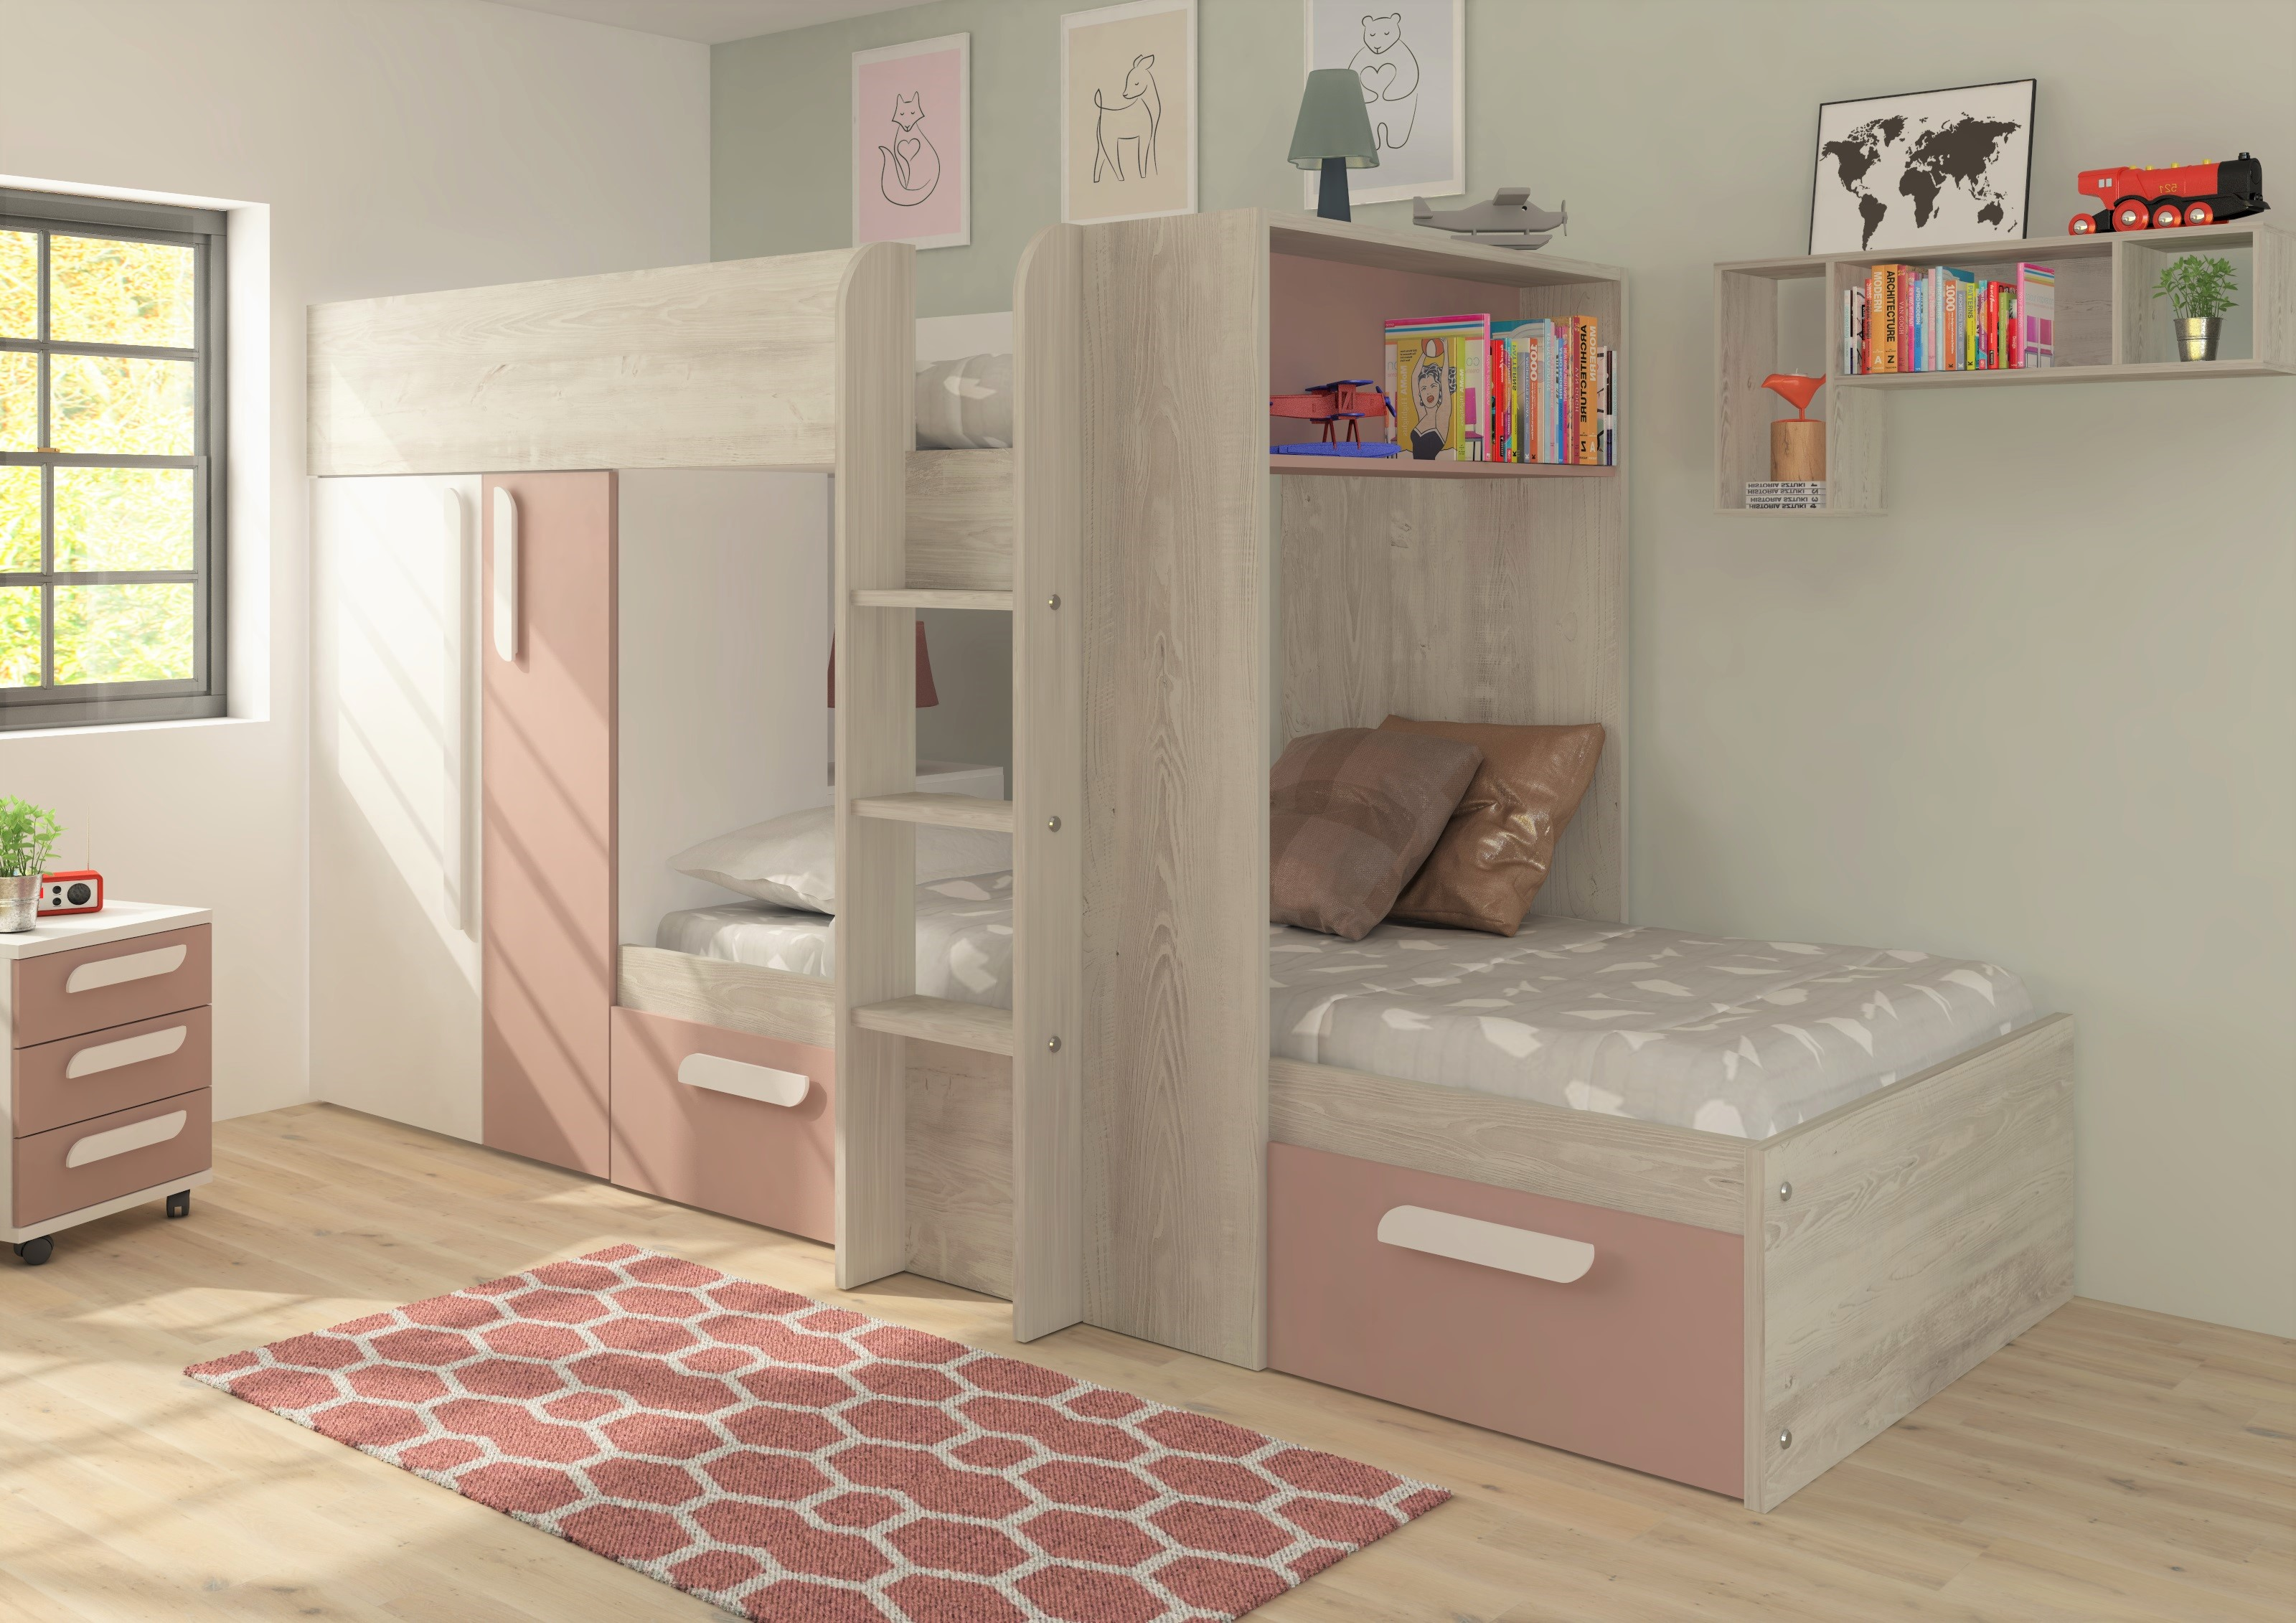 Picture of: Trasman Barca Bunkbed Pink Rainbow Wood